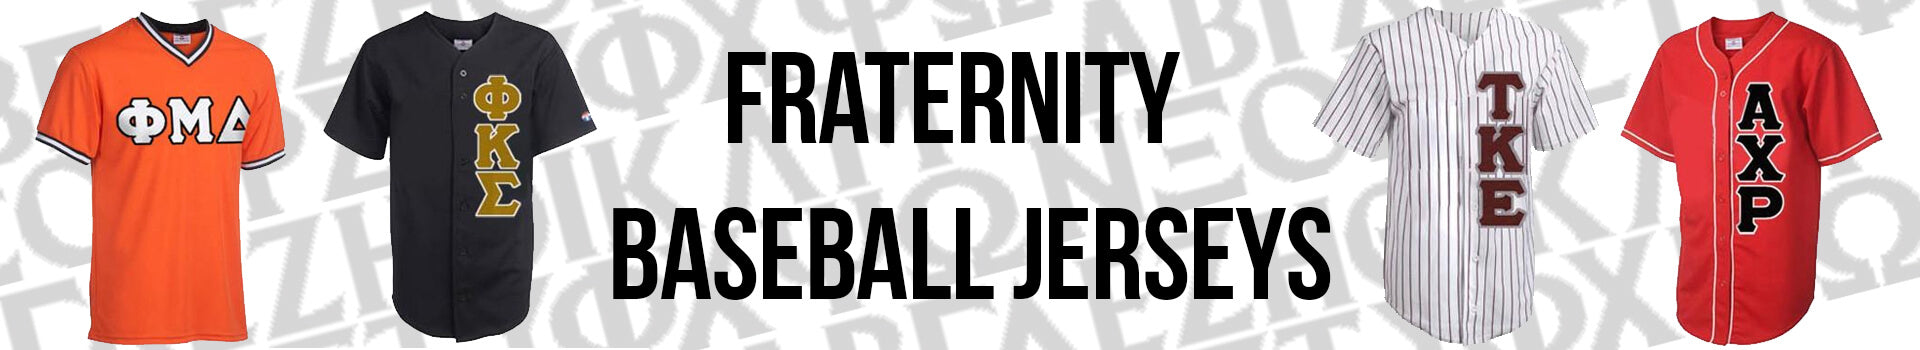 Fraternity Greek Baseball Sports Jerseys